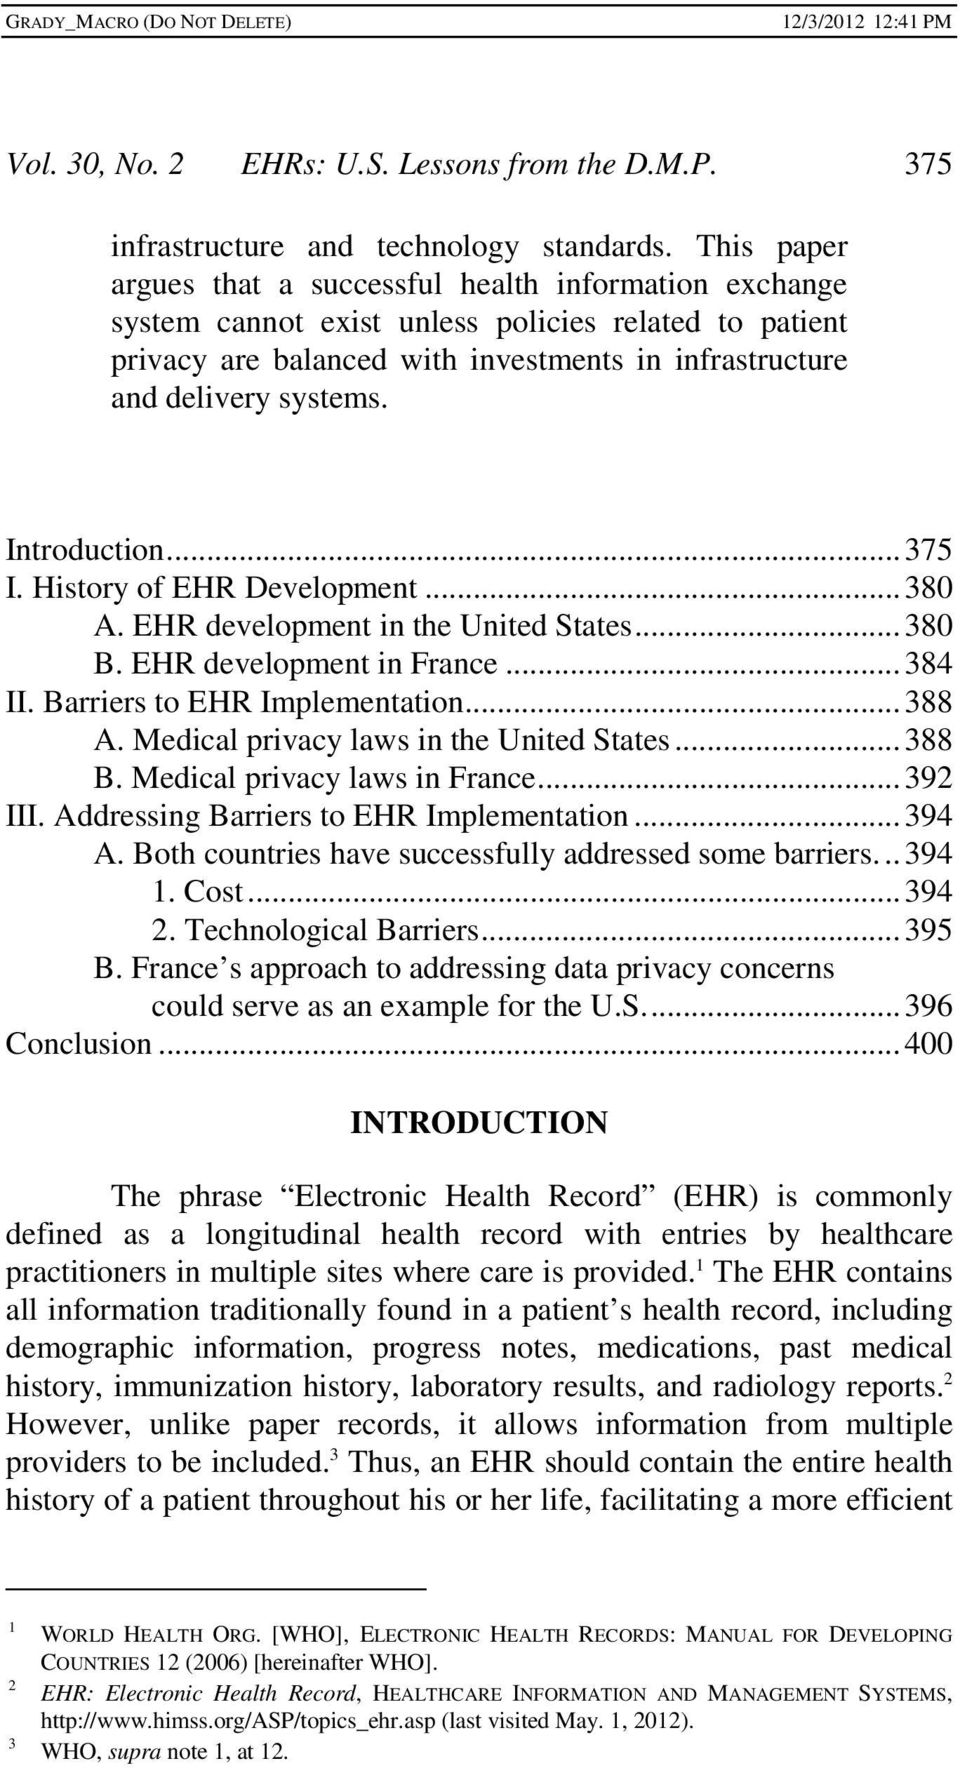 Introduction... 375 I. History of EHR Development... 380 A. EHR development in the United States... 380 B. EHR development in France... 384 II. Barriers to EHR Implementation... 388 A.